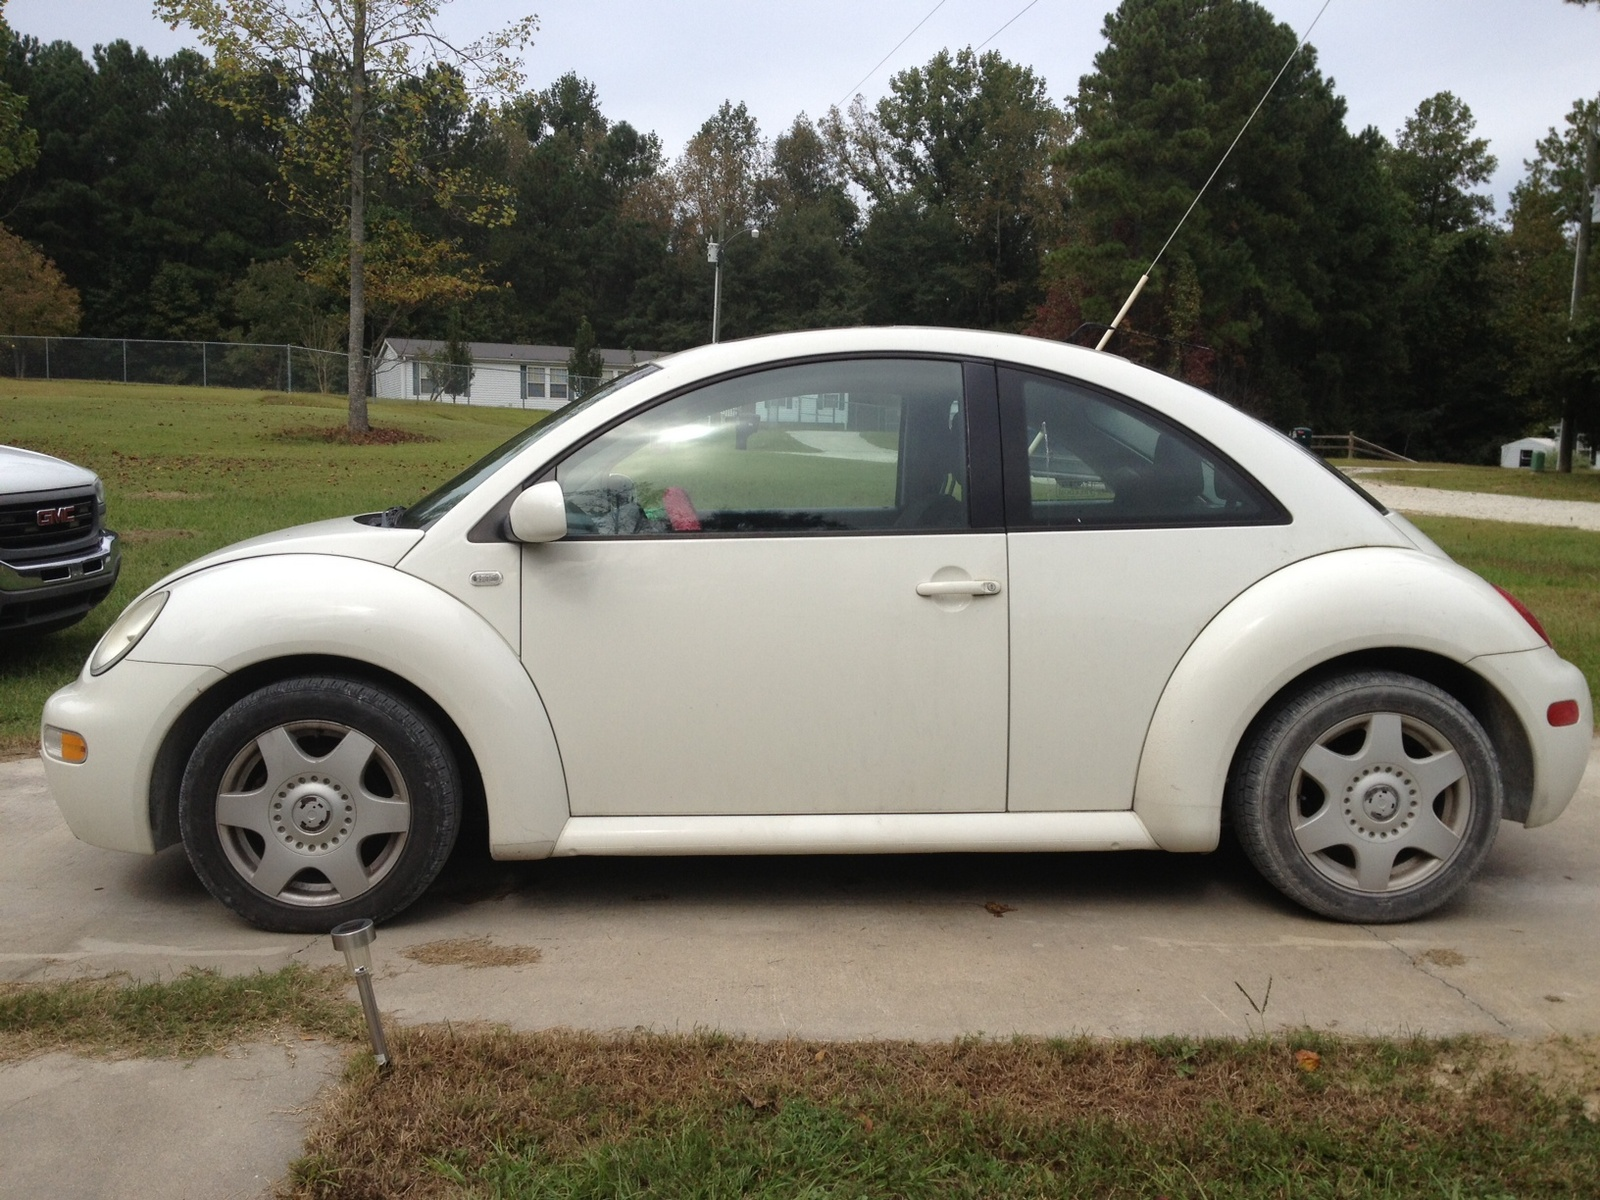 2001 volkswagen beetle yamaha warrior 350 wiring diagram for 2001 vw beetle window problems